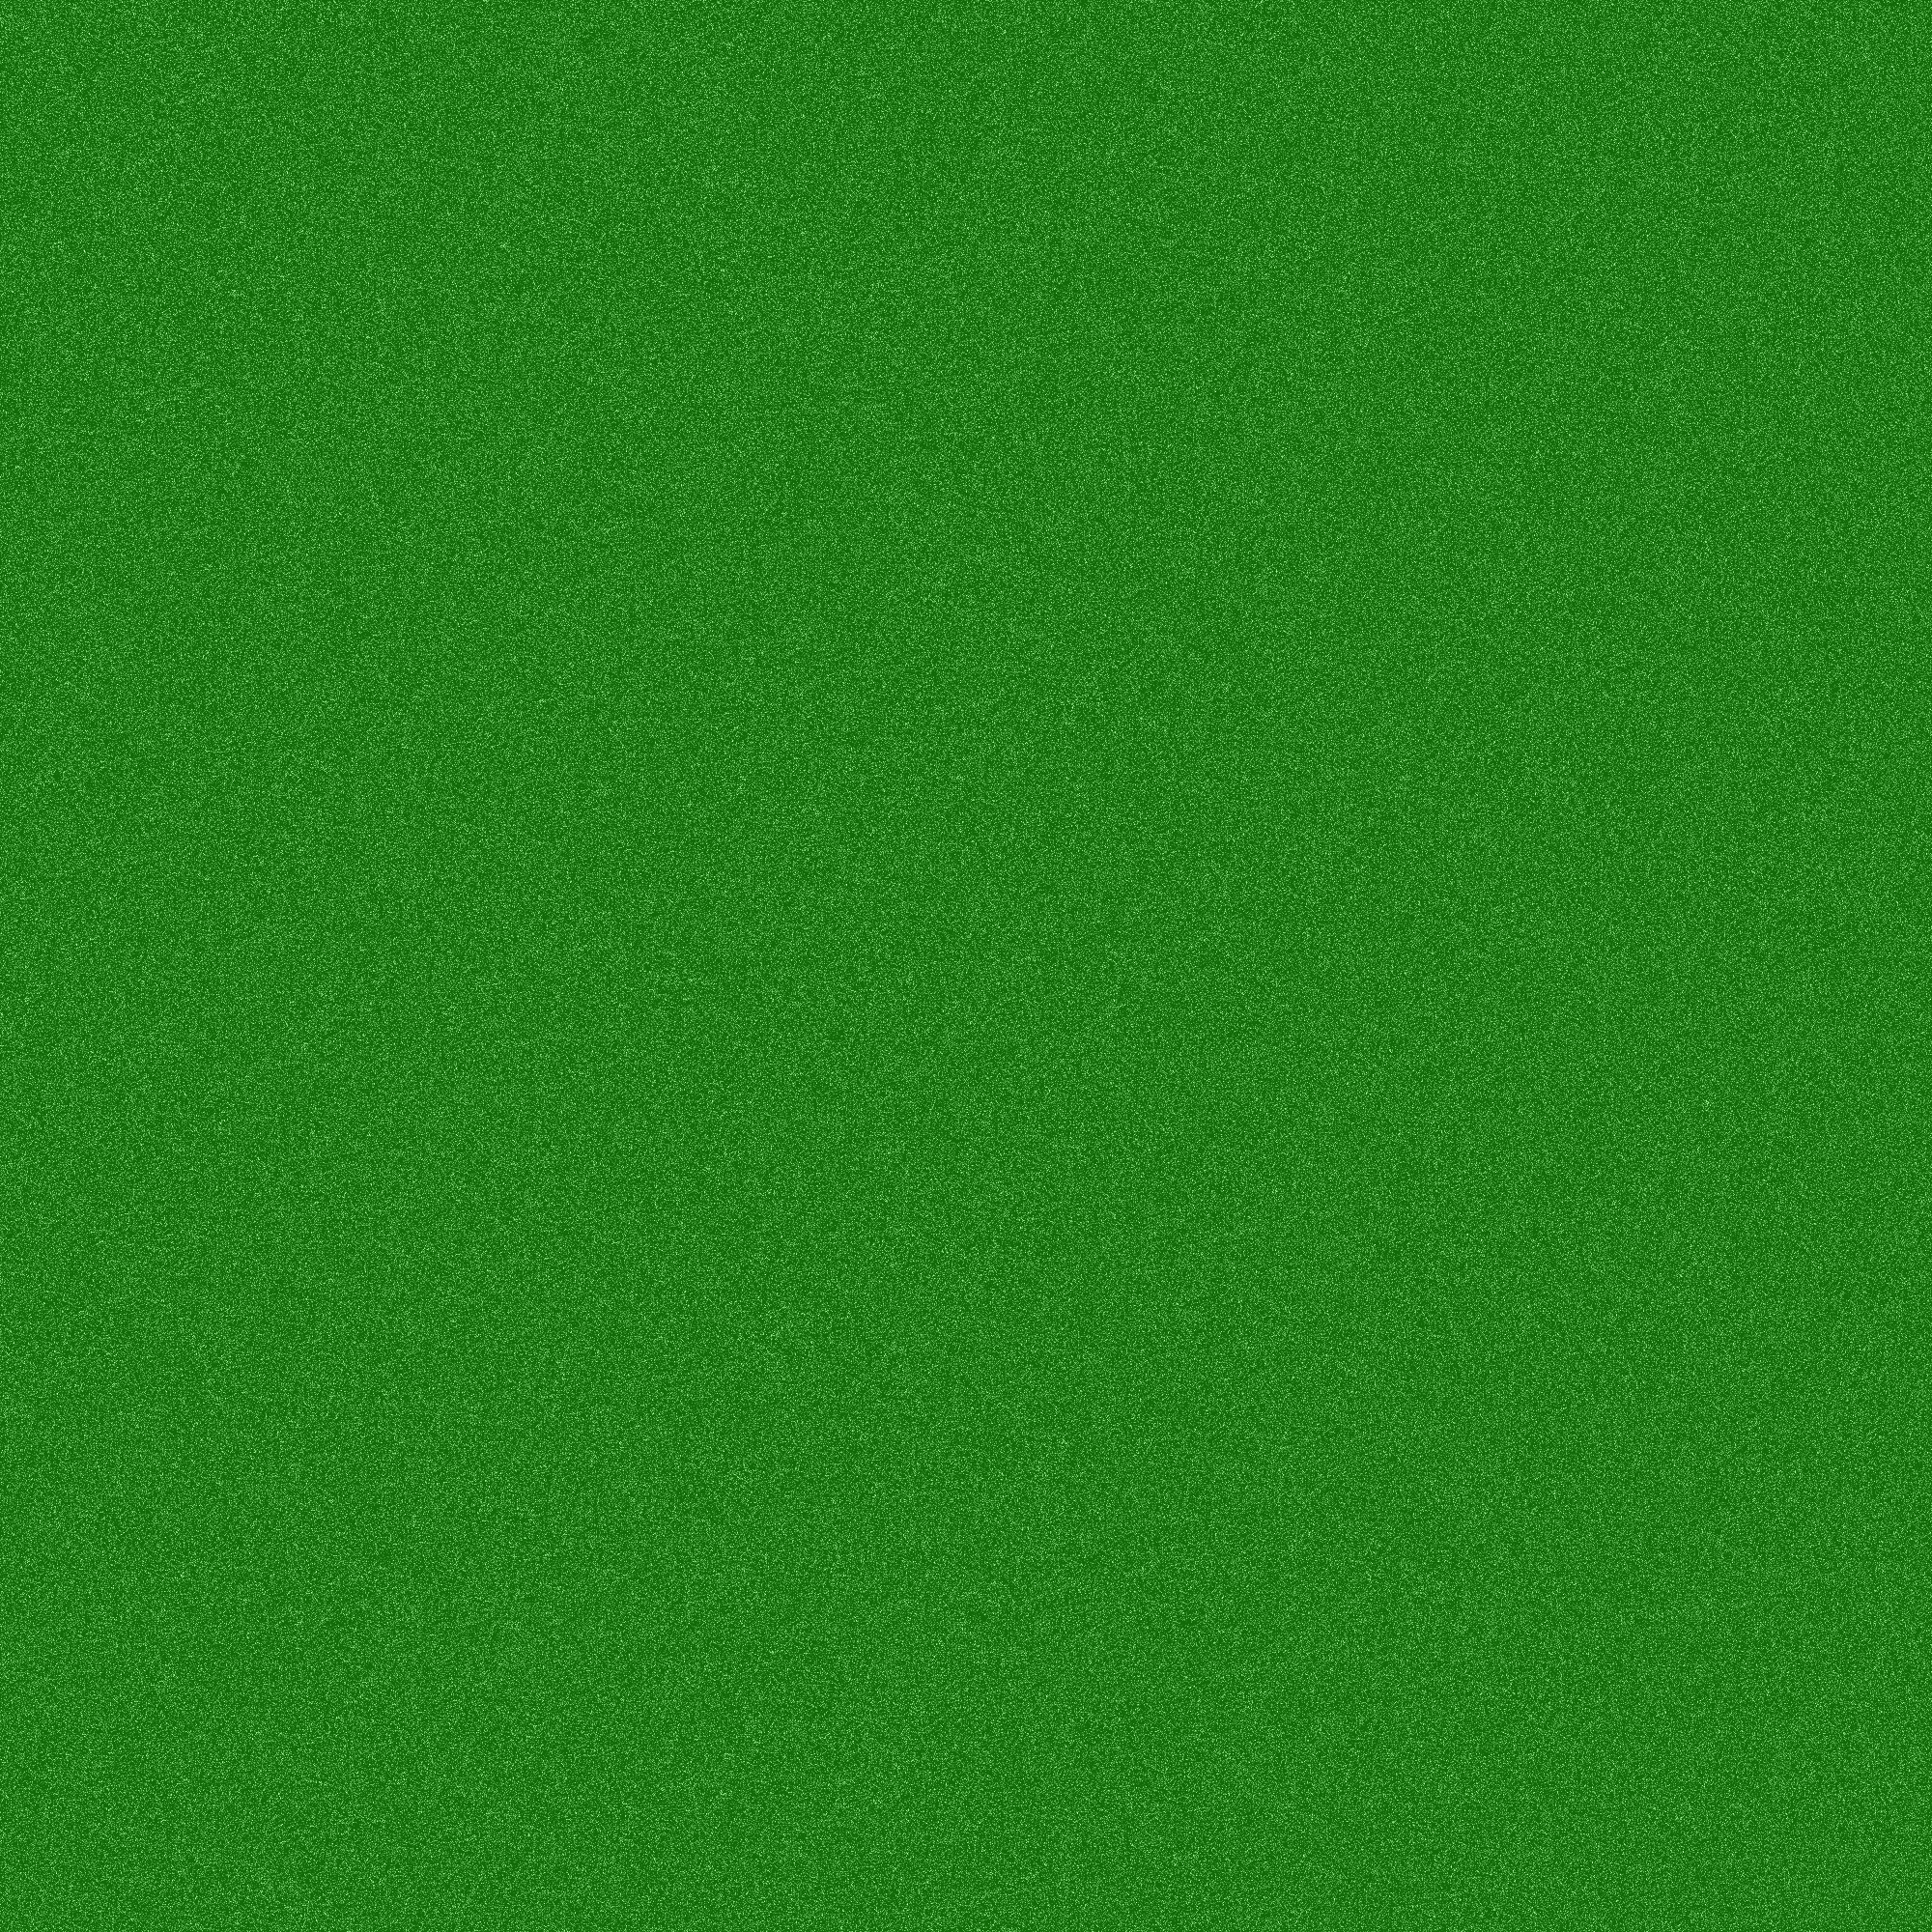 noize_background_green